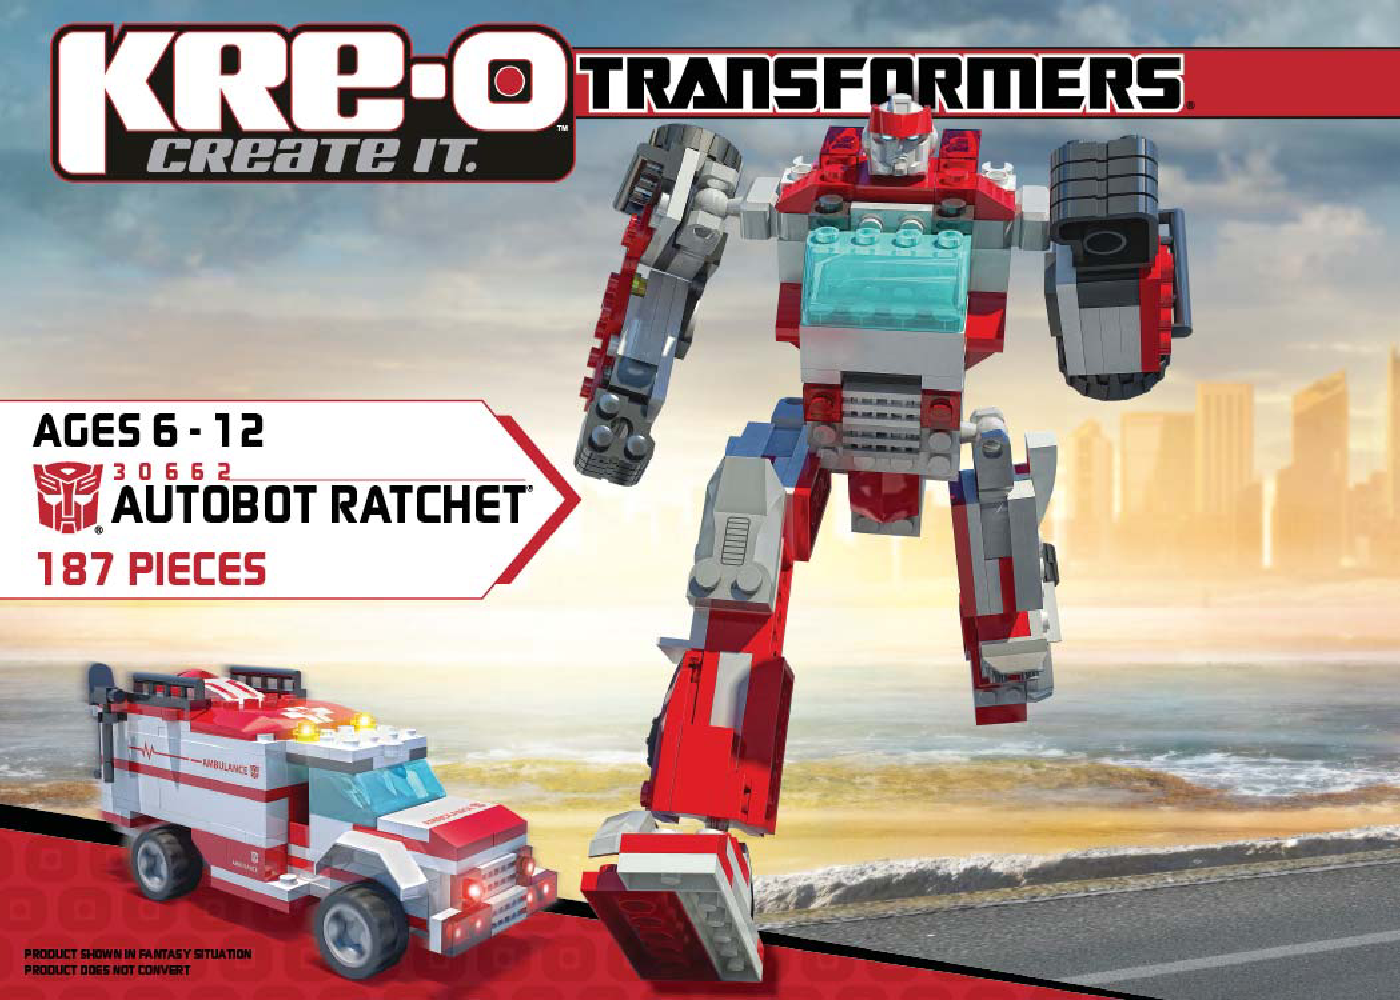 Manual kre-o set 30662 transformers autobot ratchet.